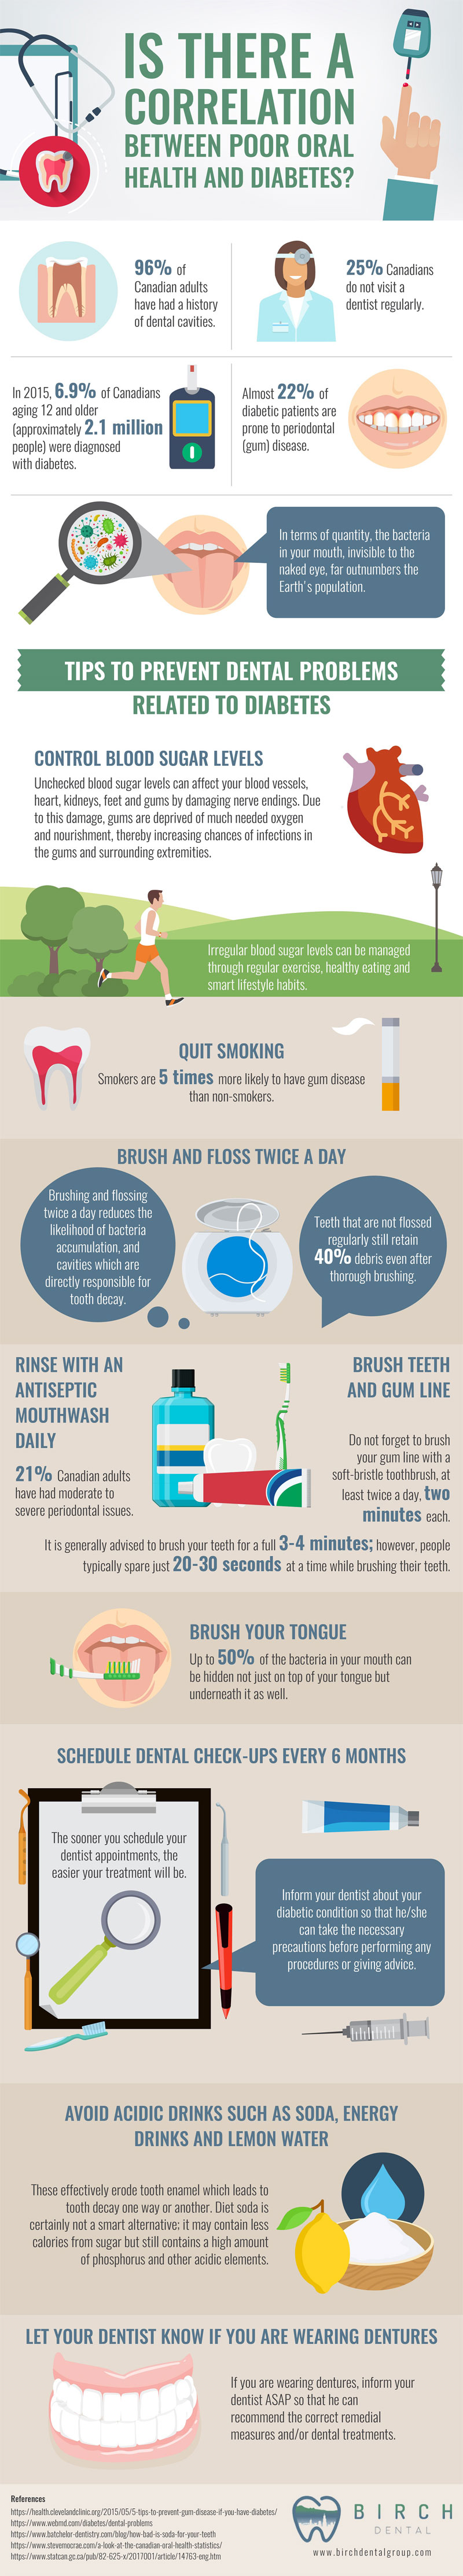 Oral Hygiene & Diabetes Correlation